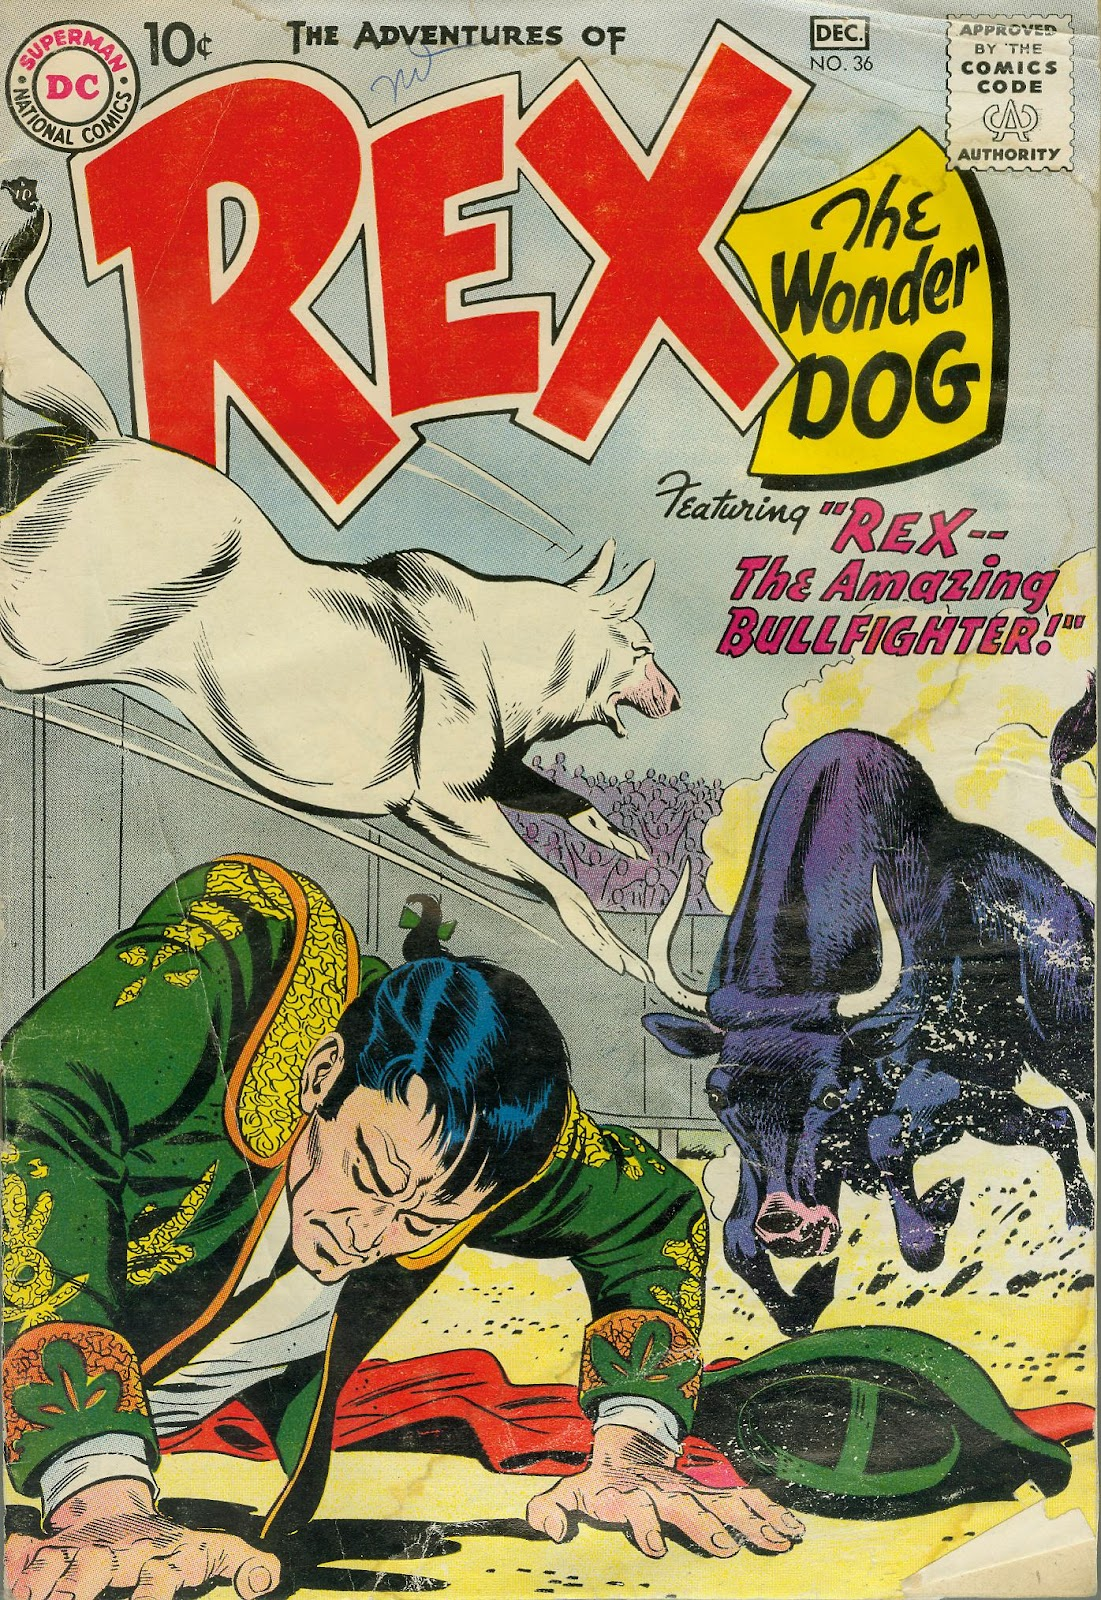 The Adventures of Rex the Wonder Dog issue 36 - Page 1